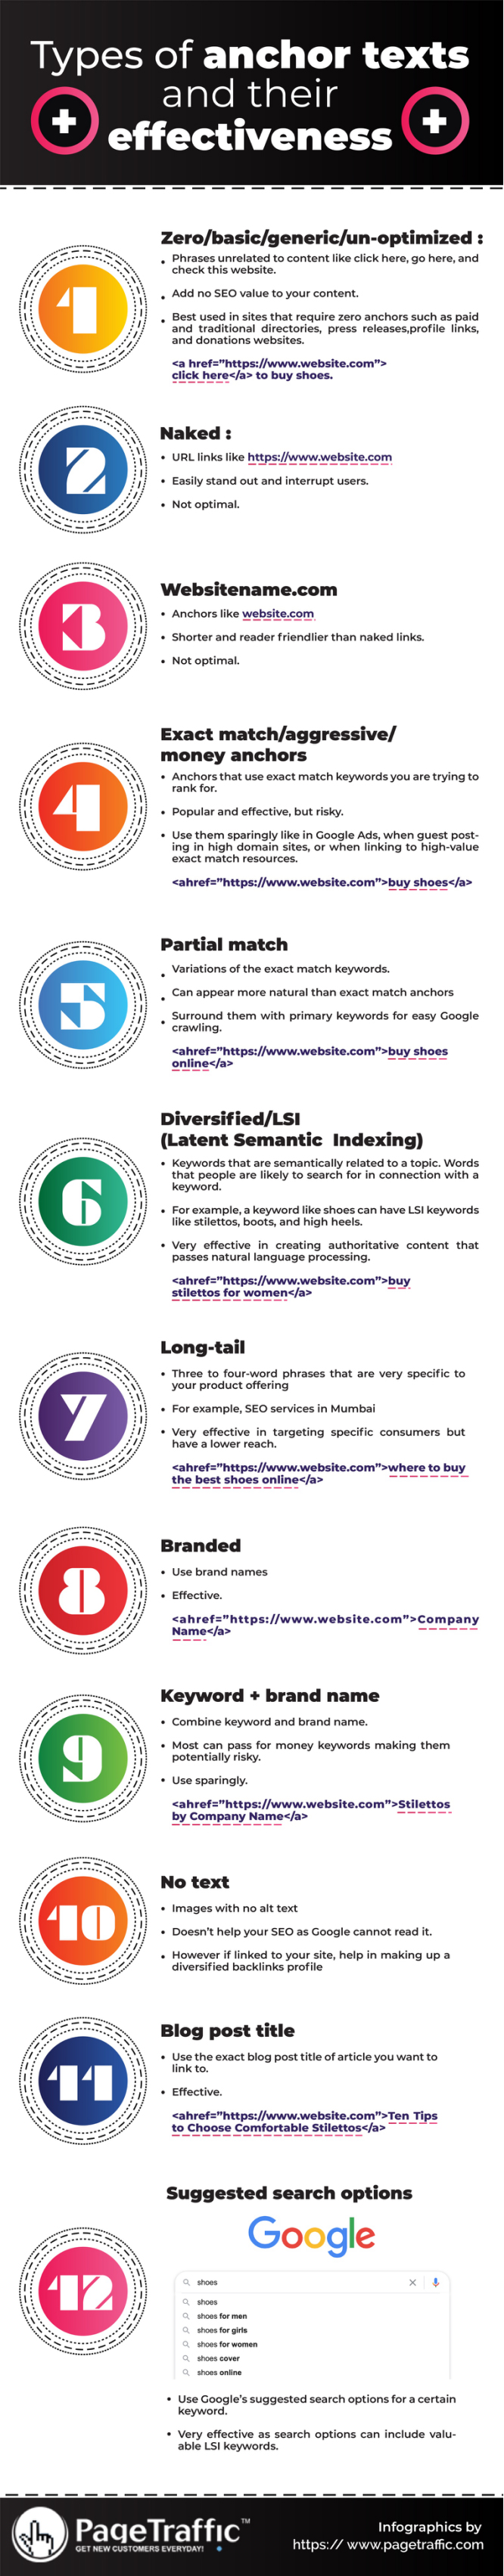 Best Anchor Text Optimization Practices [Infographic] #Infographic